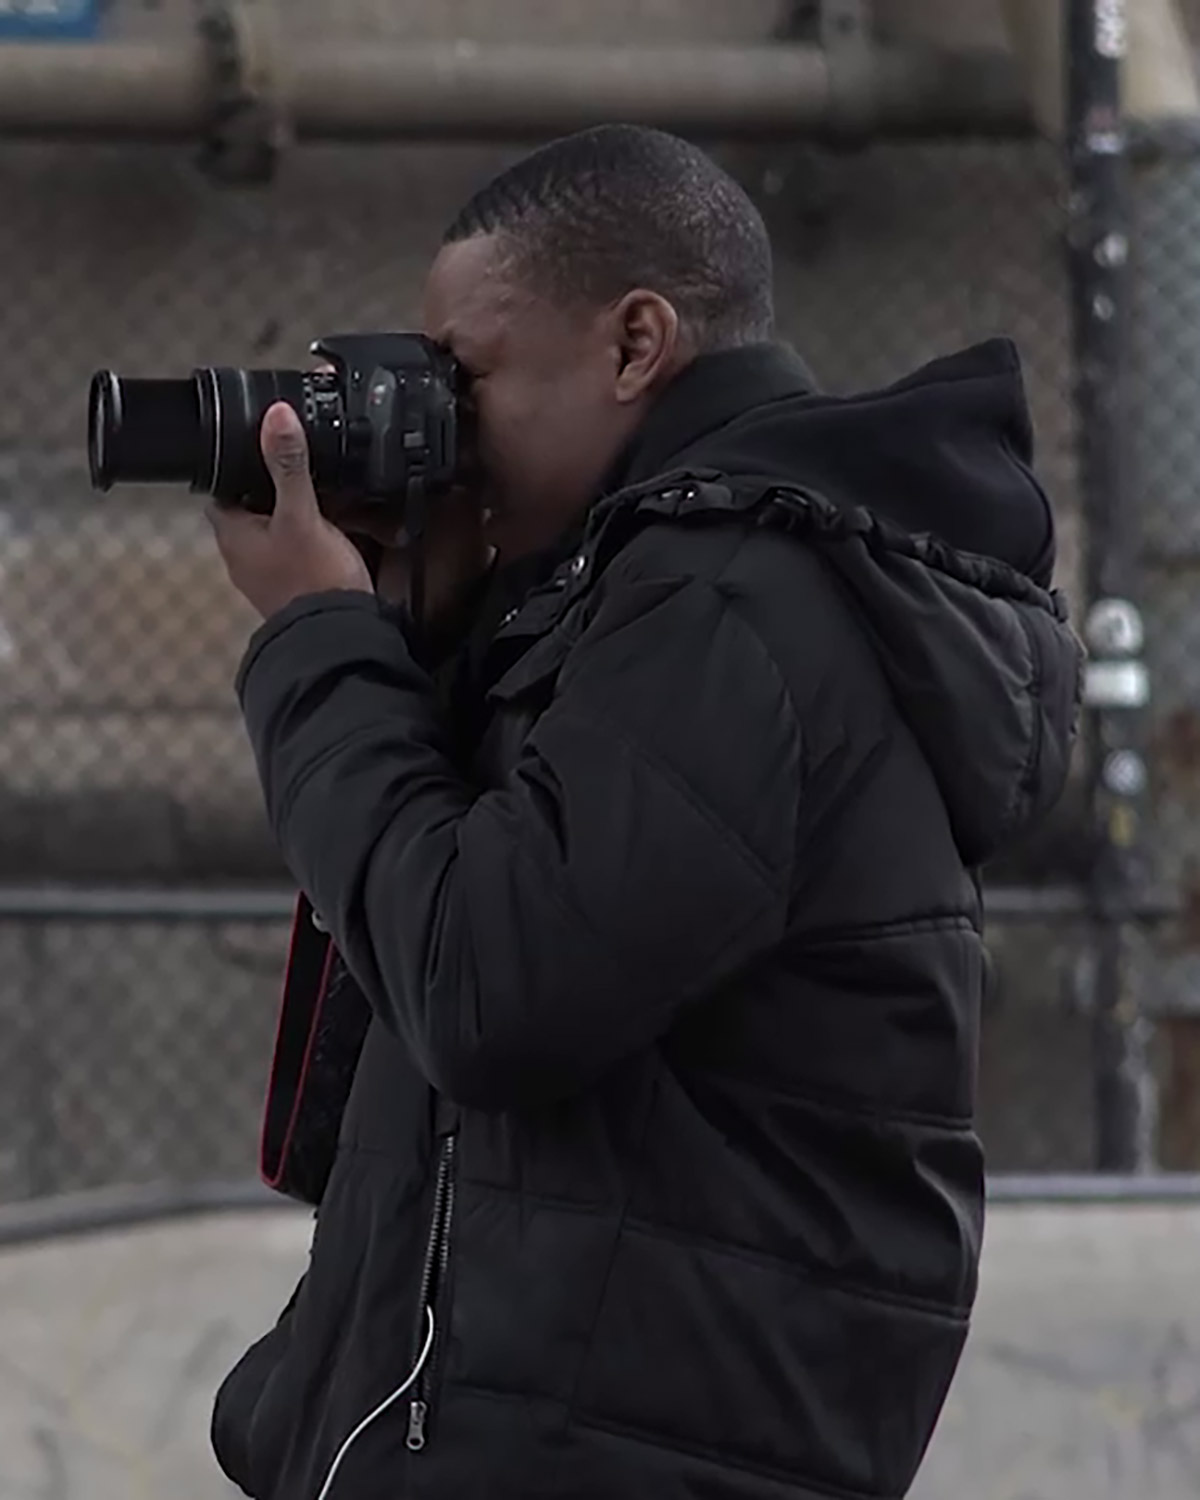 Student photographer in the field